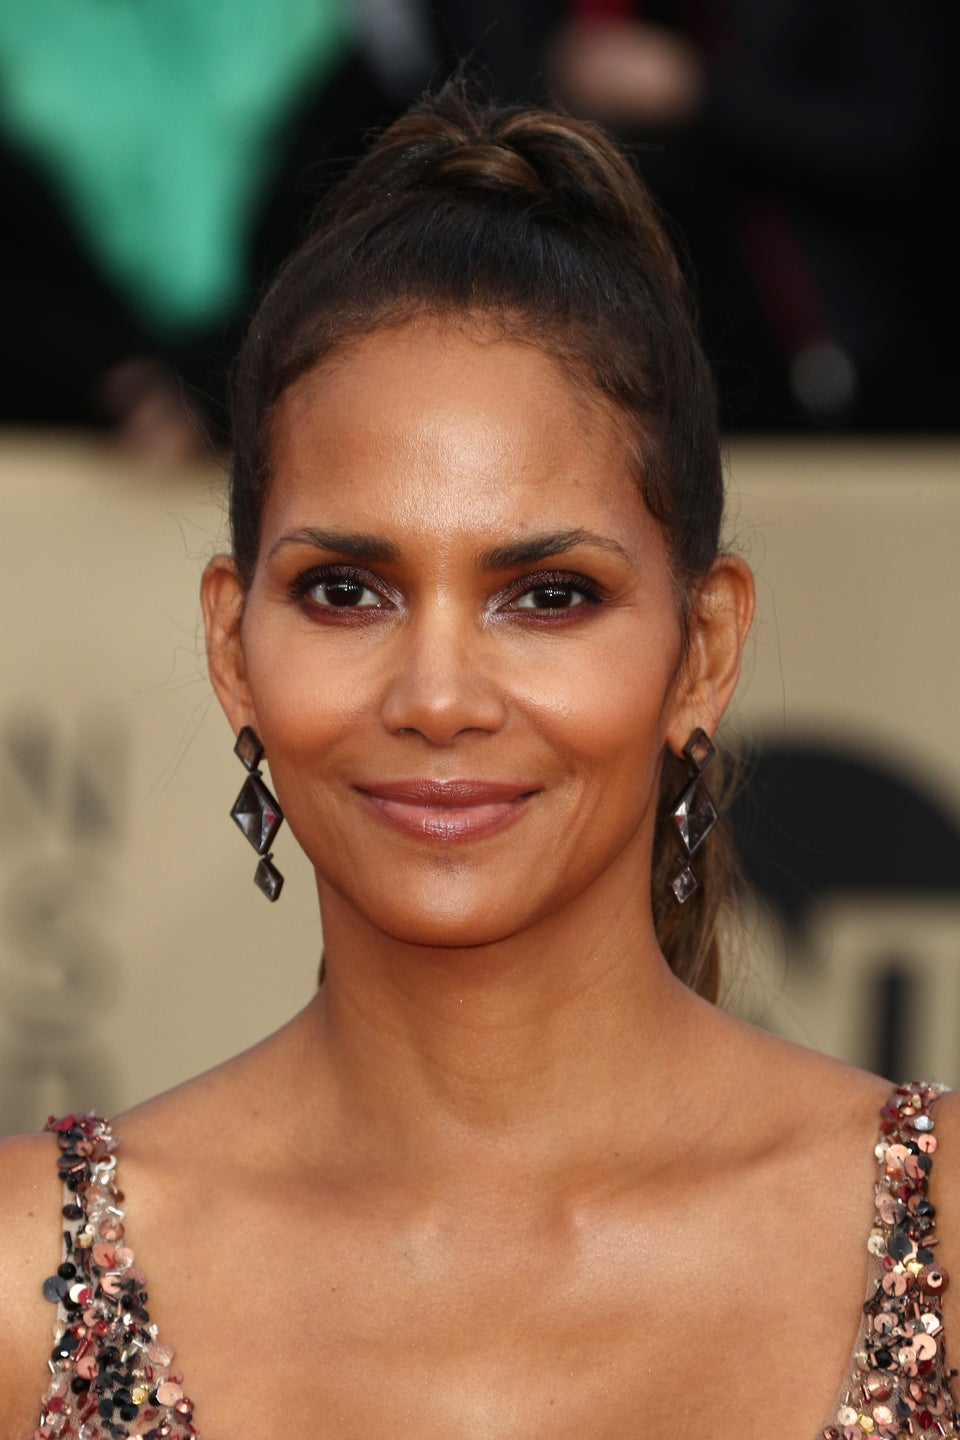 Halle Berry Responds To Allegations That Her Former Agent Sexually Harassed Minority Actresses